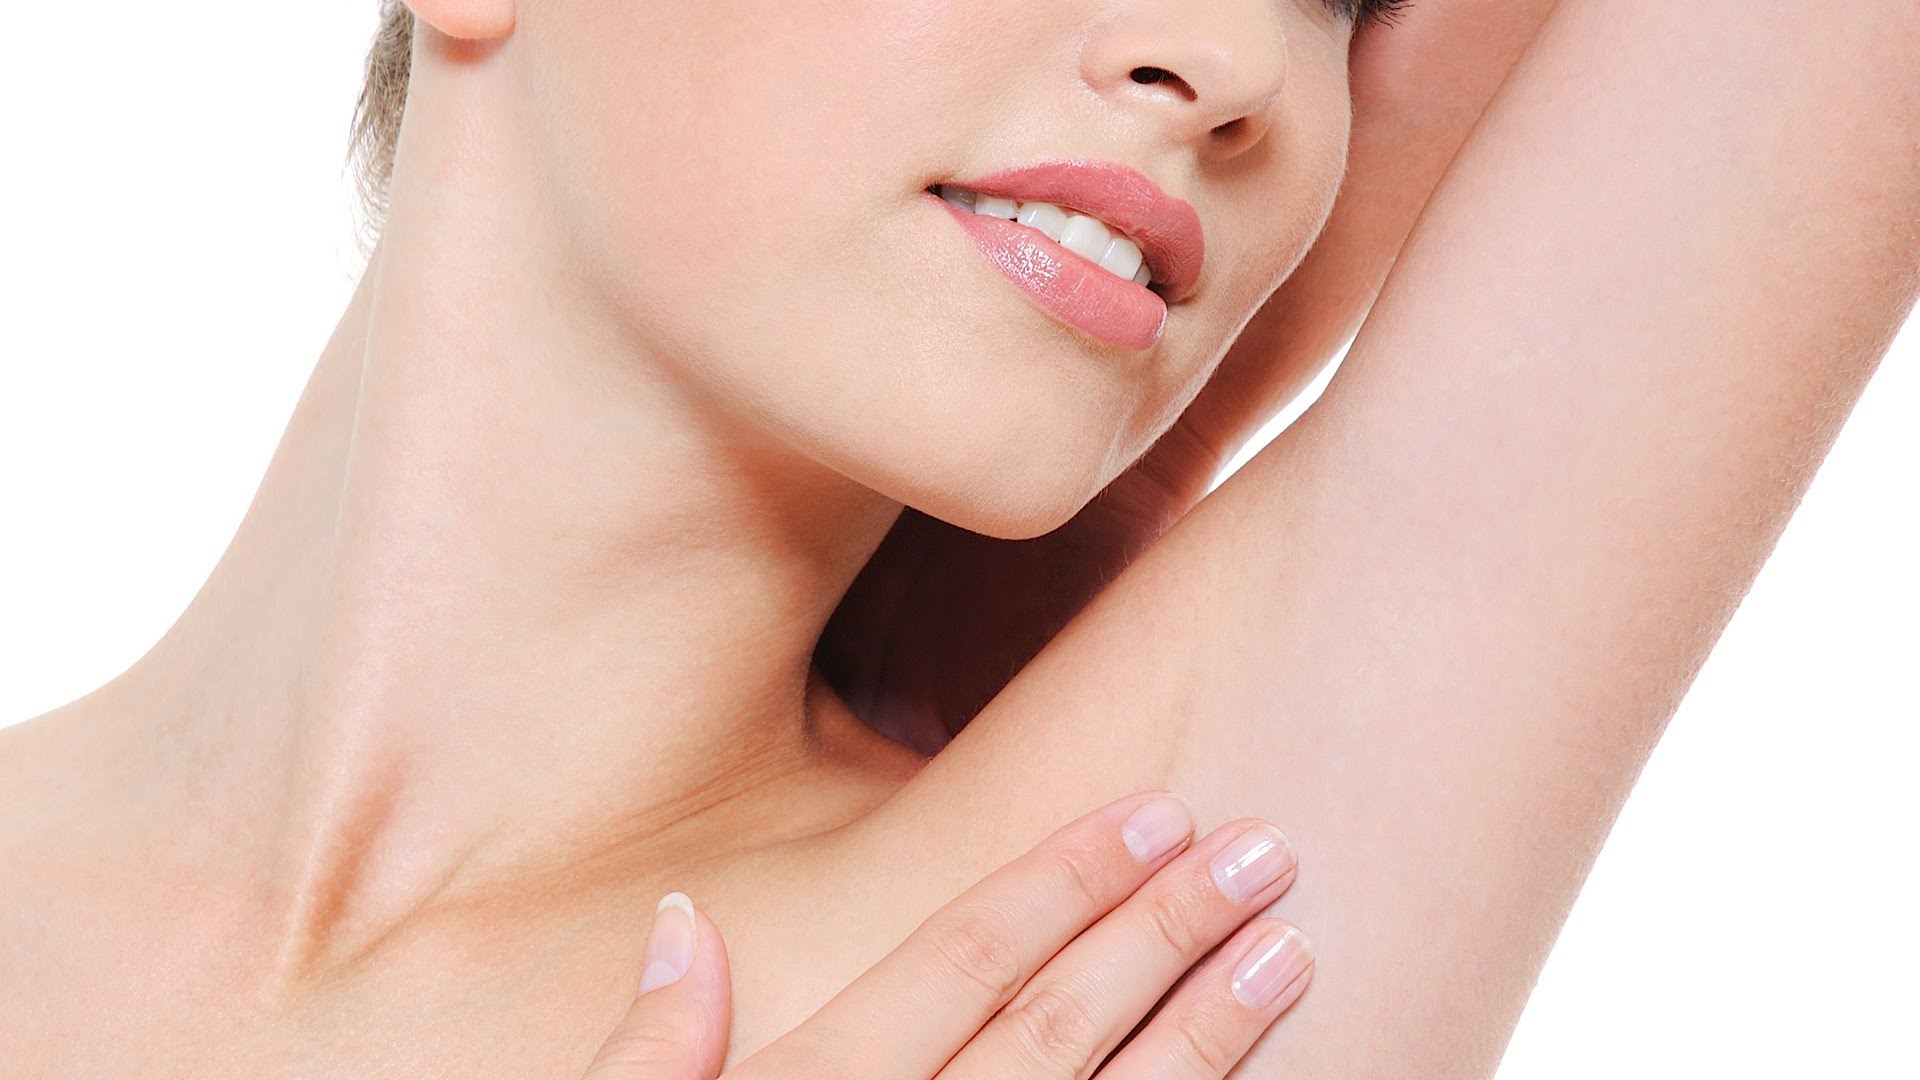 5 Steps To Pretty Underarms